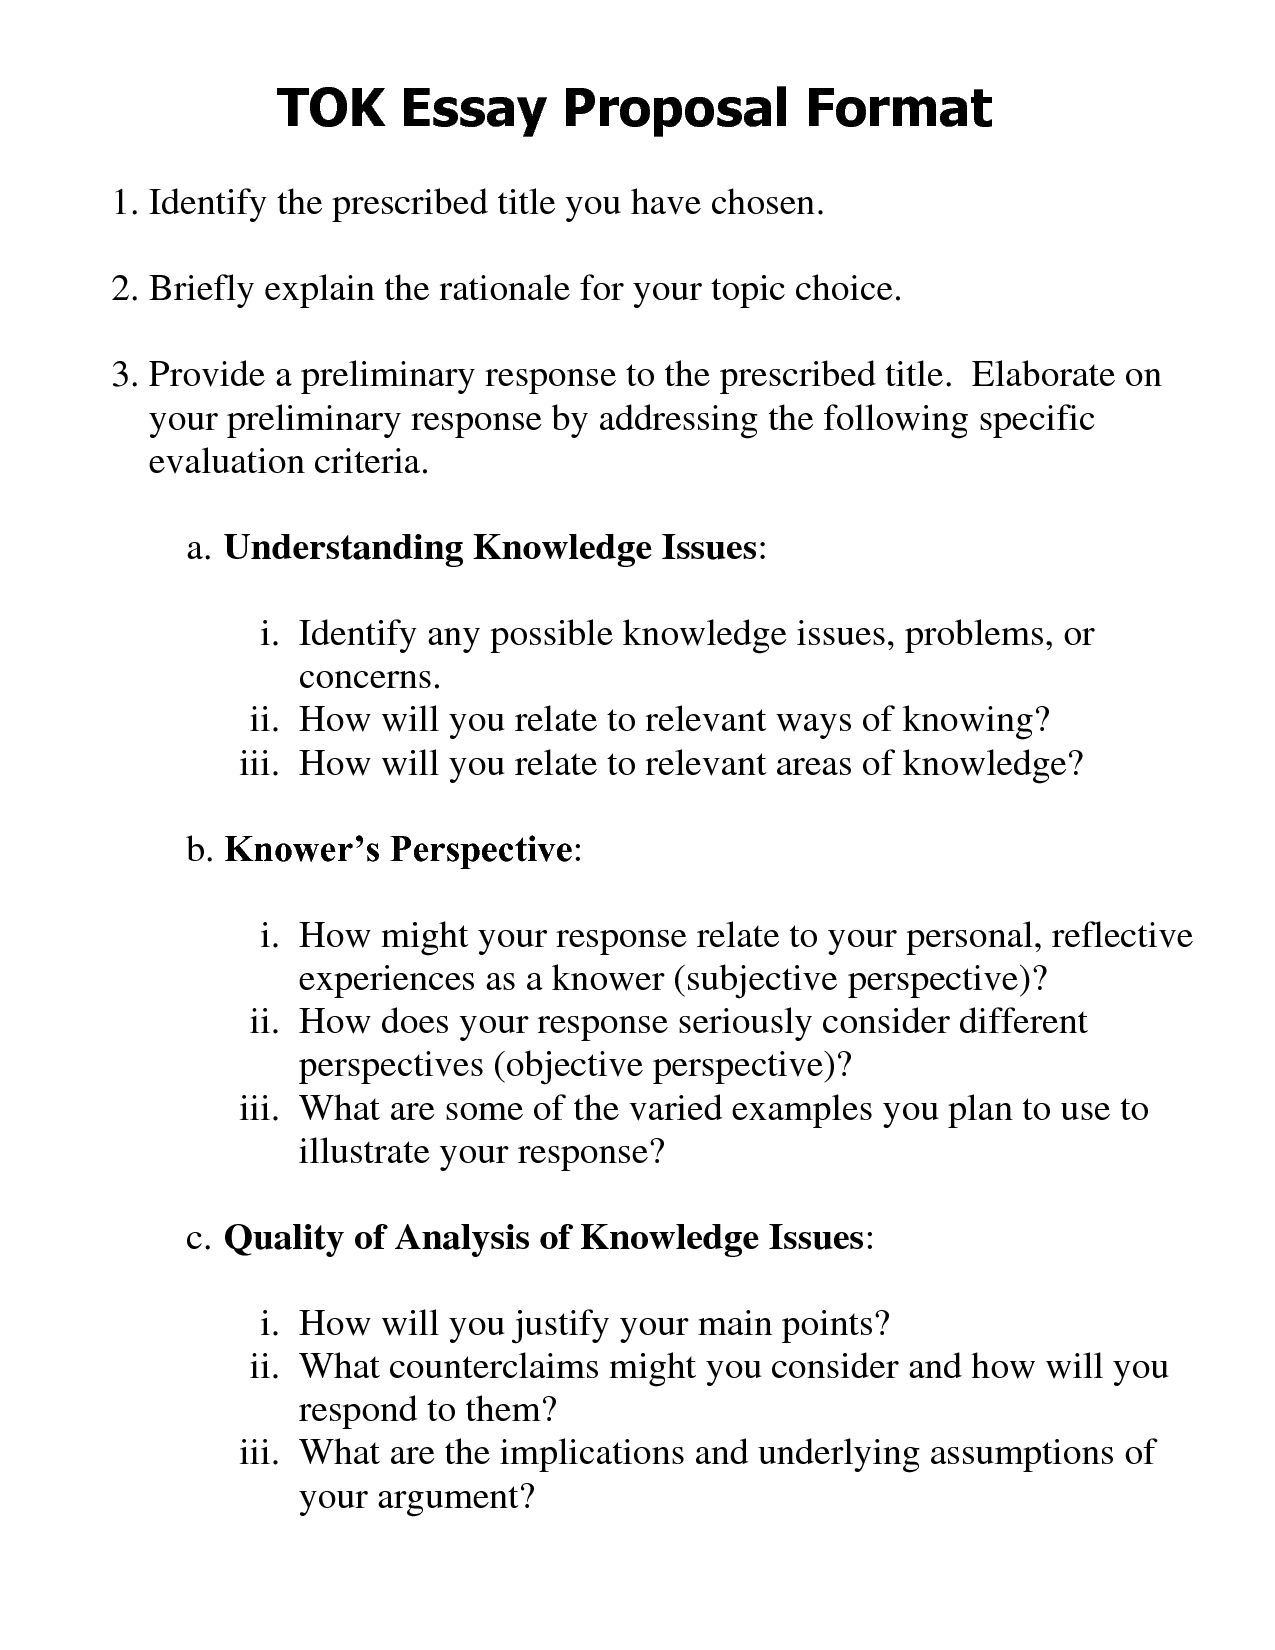 taming of the shrew essay topics essay taming of the shrew essay  proposal essay ideas proposal essay ideas a modest proposal essay example essay proposal paper essaywrite my